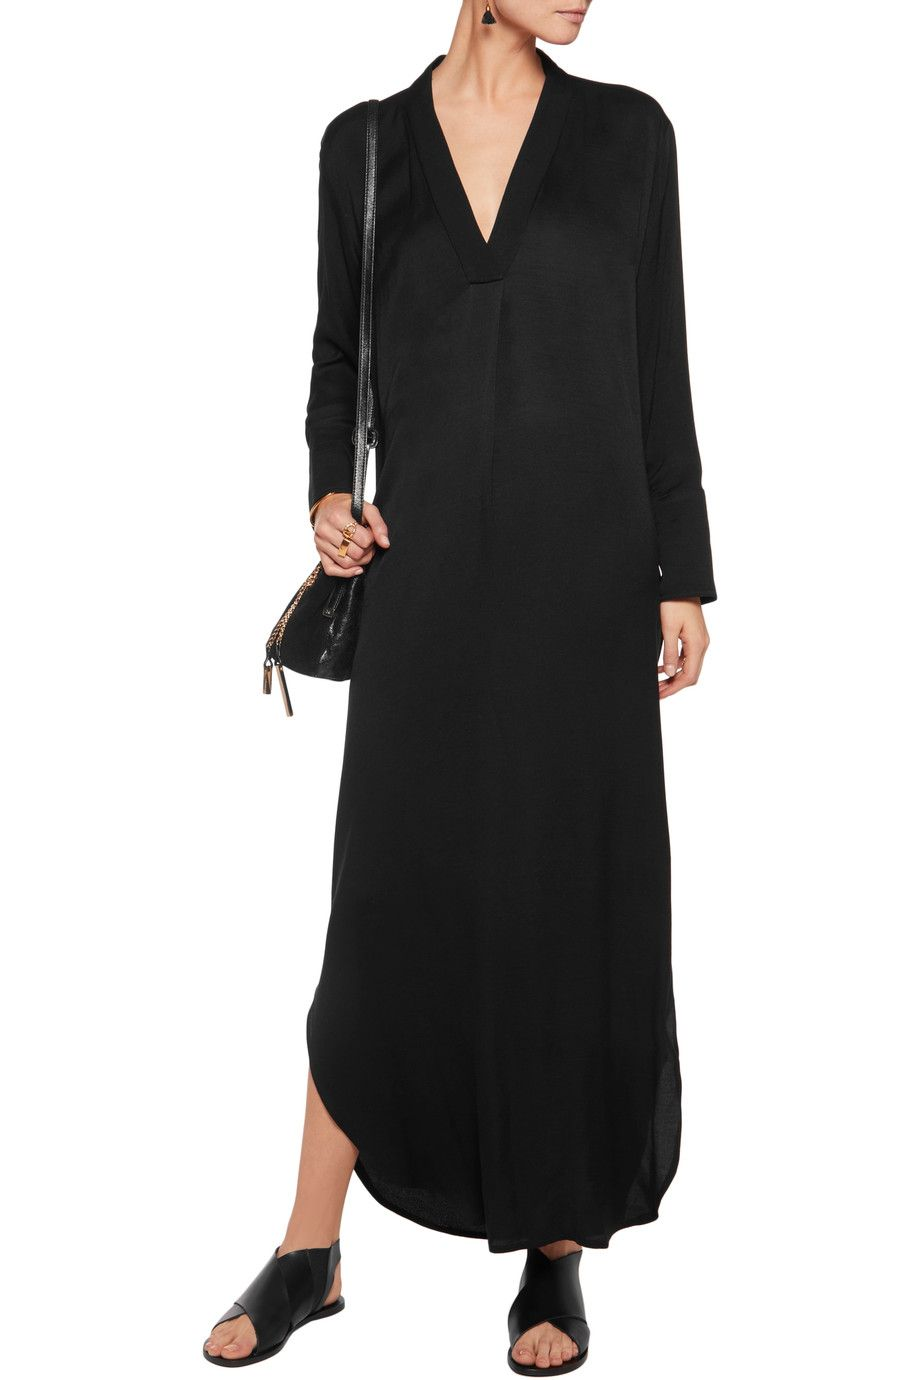 10749659abe Shop on-sale By Malene Birger Wikkias twill maxi dress. Browse other ...